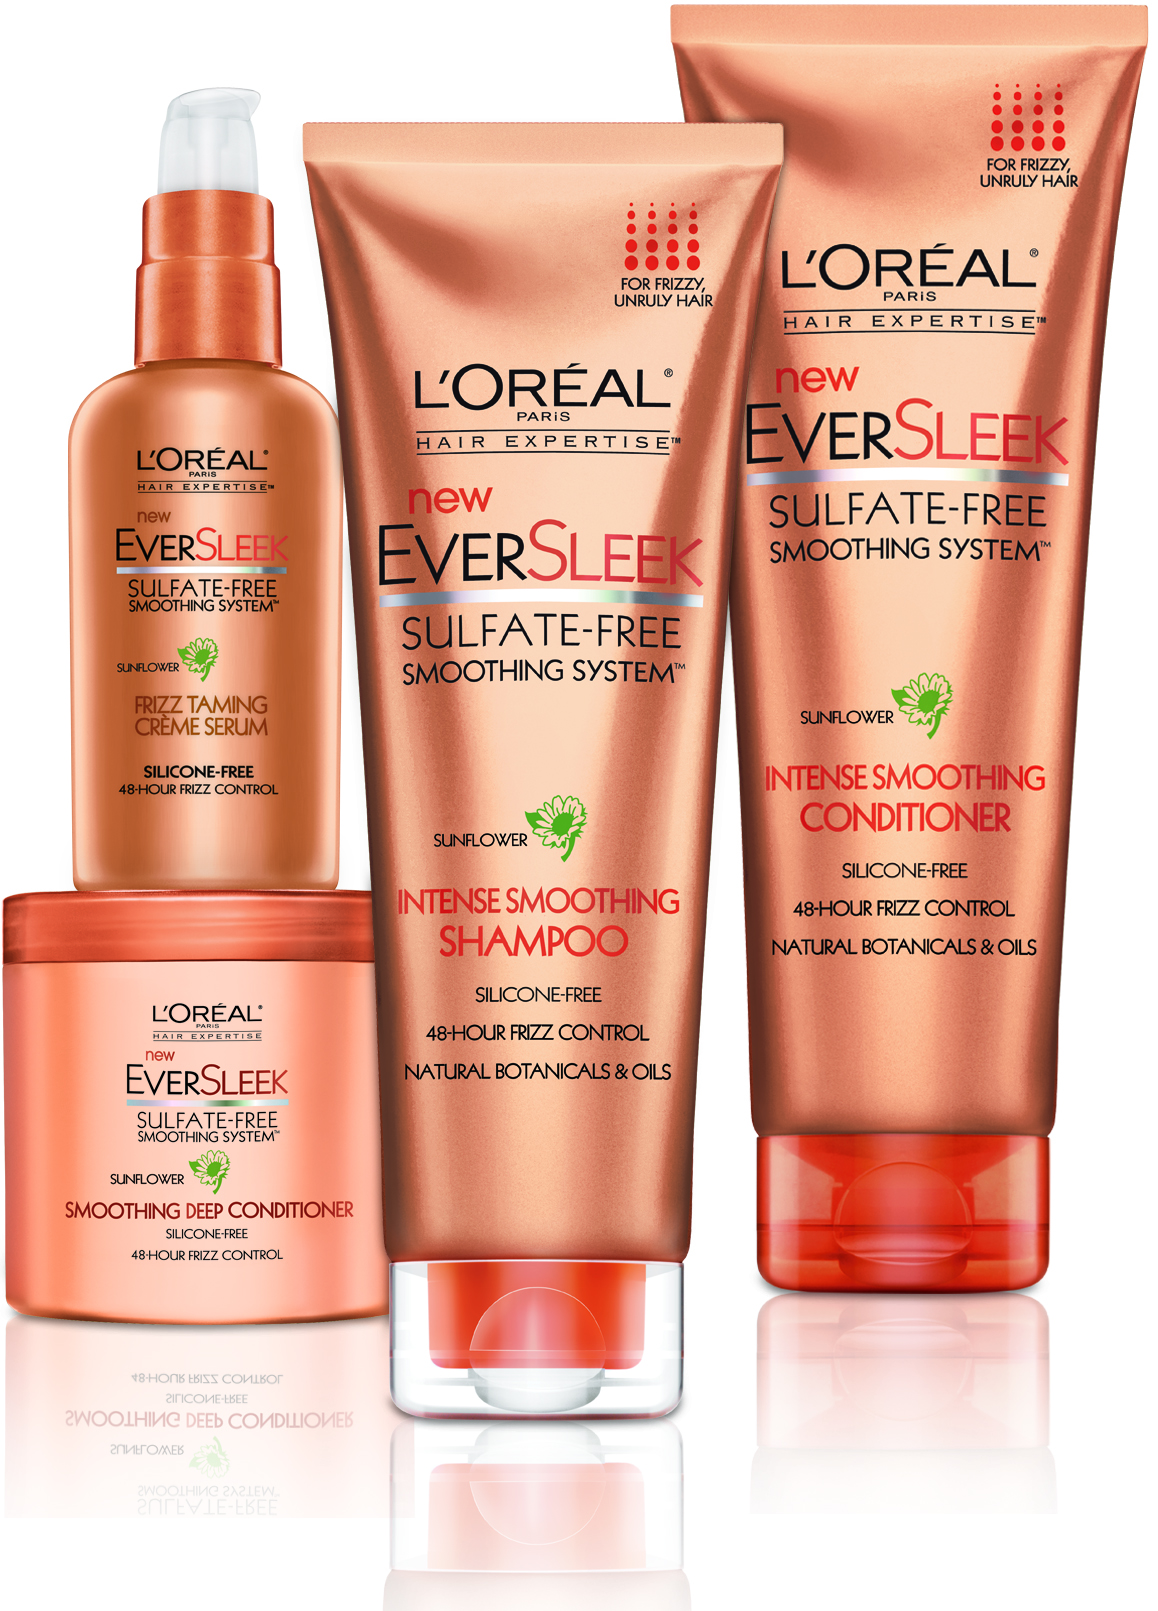 L'Oreal Paris L'Oréal Paris is a leading French beauty brand that brings you trusted and affordable ranges including innovative top performing favourites such as Revitalift, Age Perfect & Youth Code.